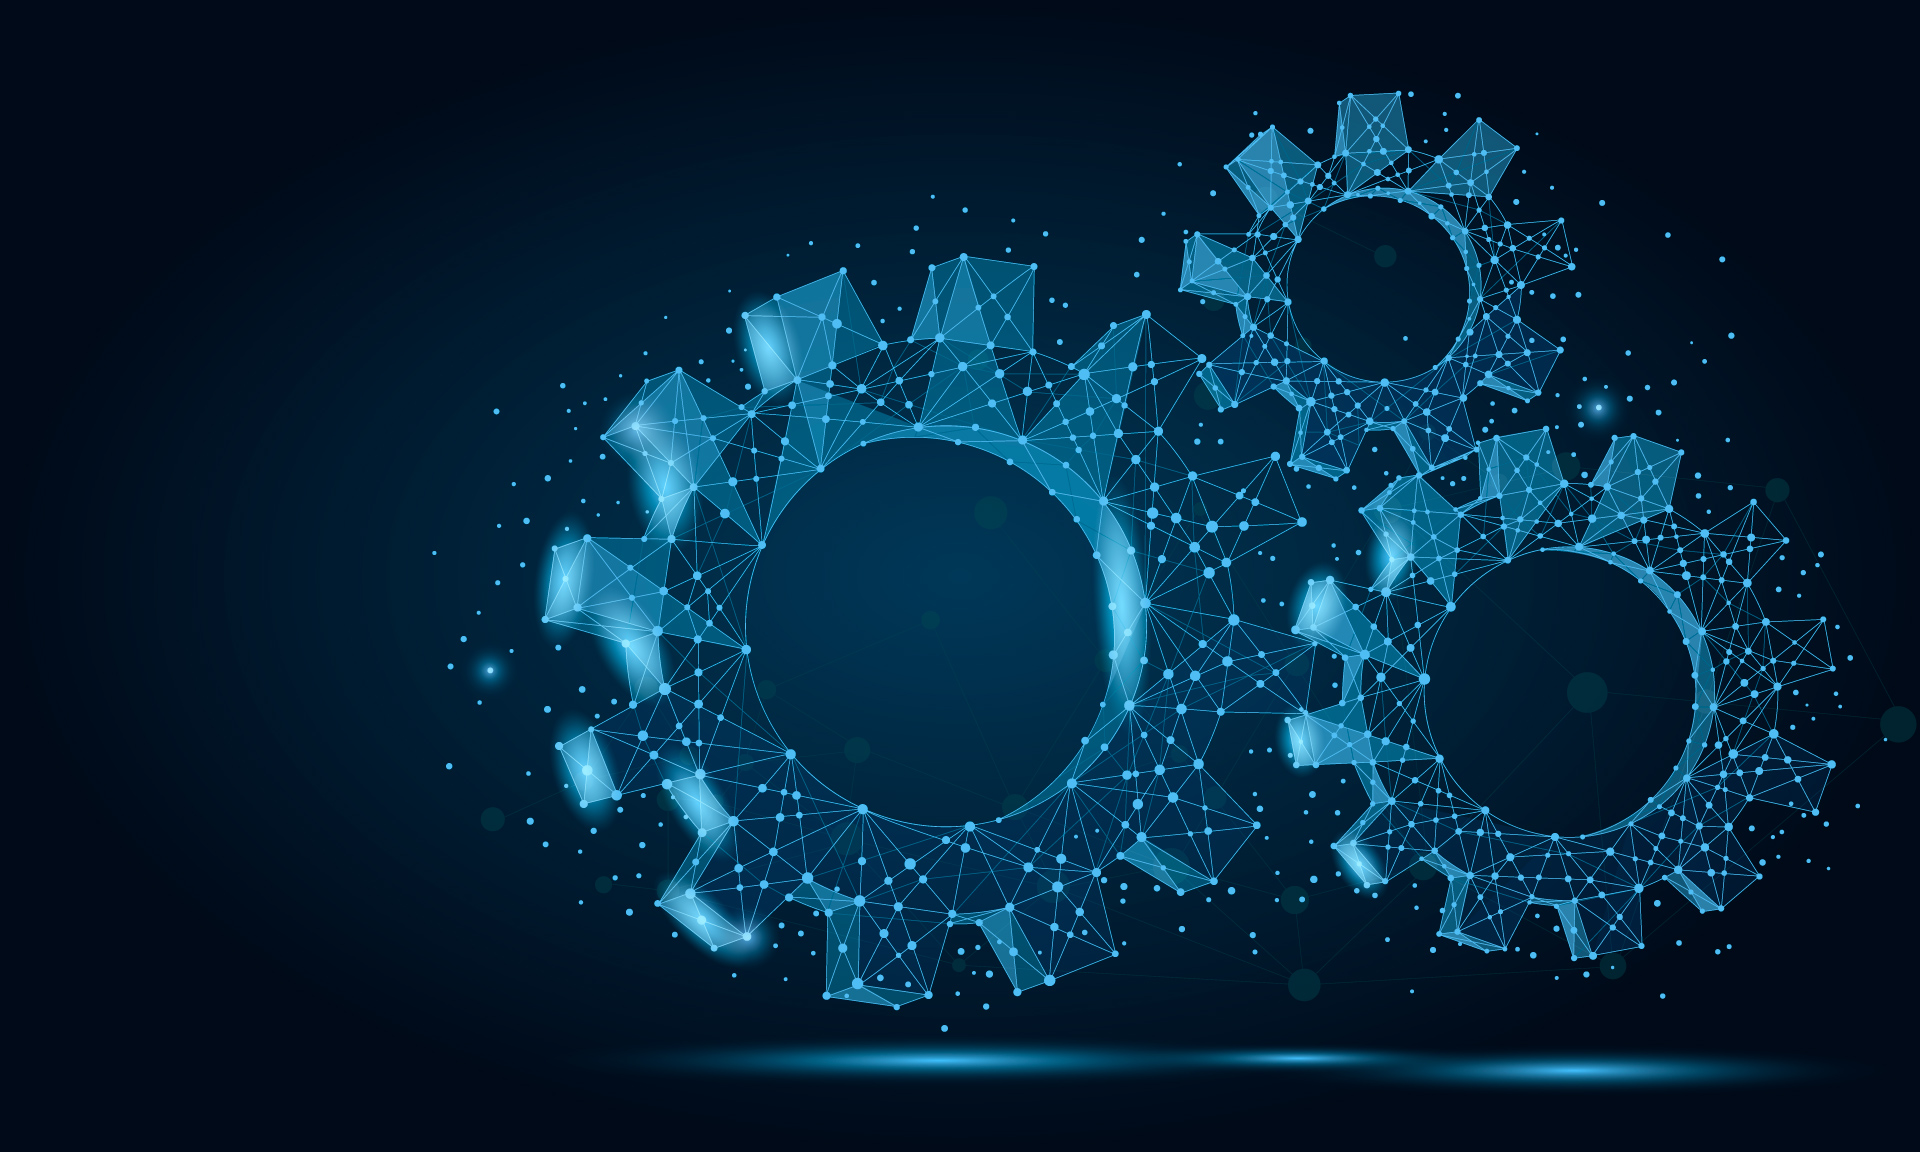 Image of blue cogs